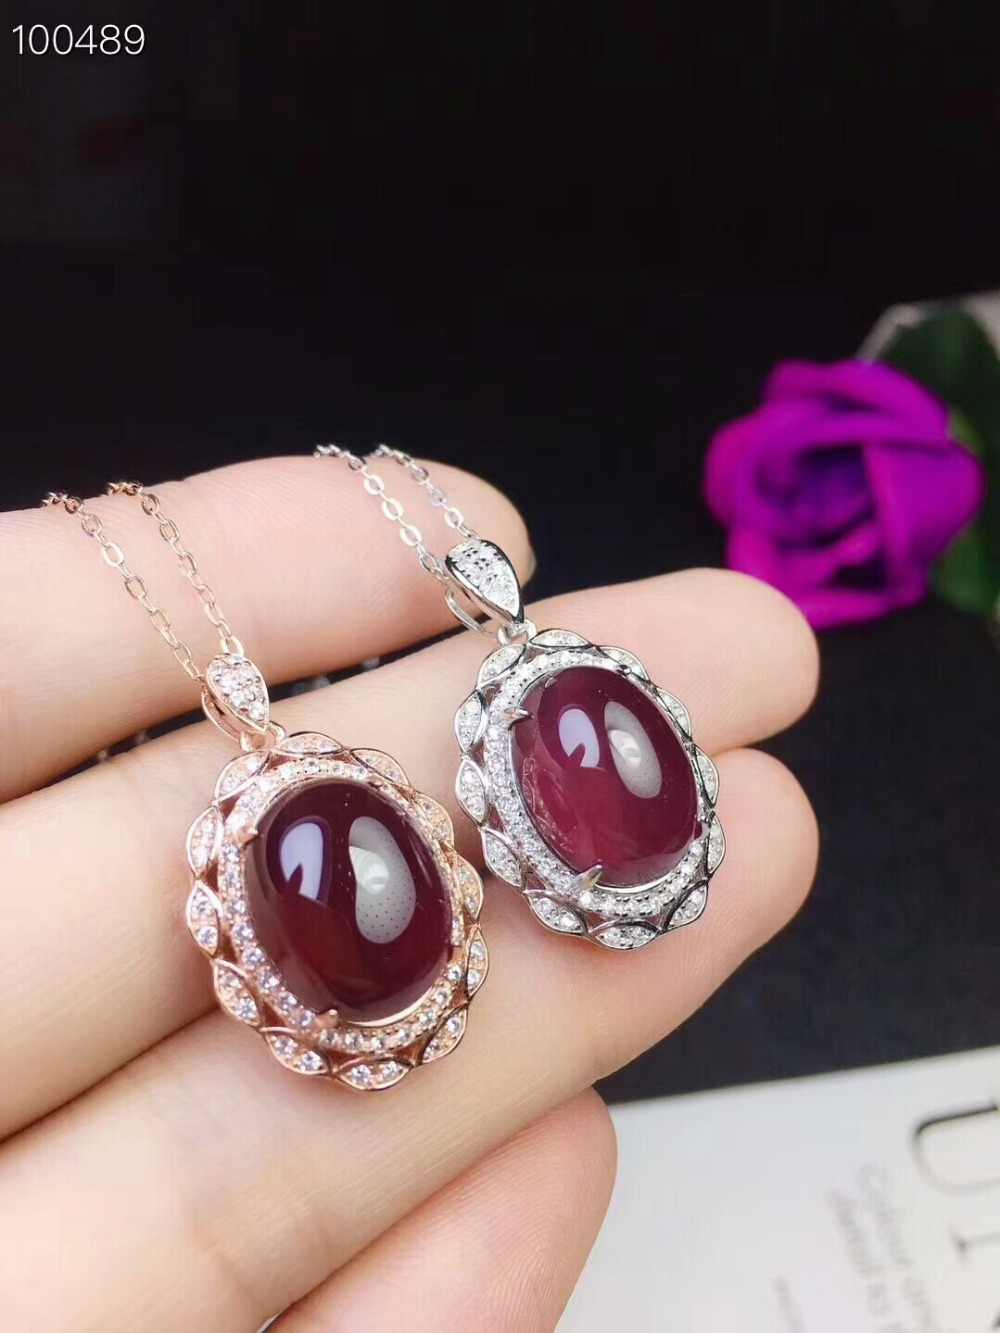 [MeiBaPJ]Real Natural Garnet Big Pendant Necklace with Certificate 925 Pure Silver Red Stone Fine Charm Jewelry for Women